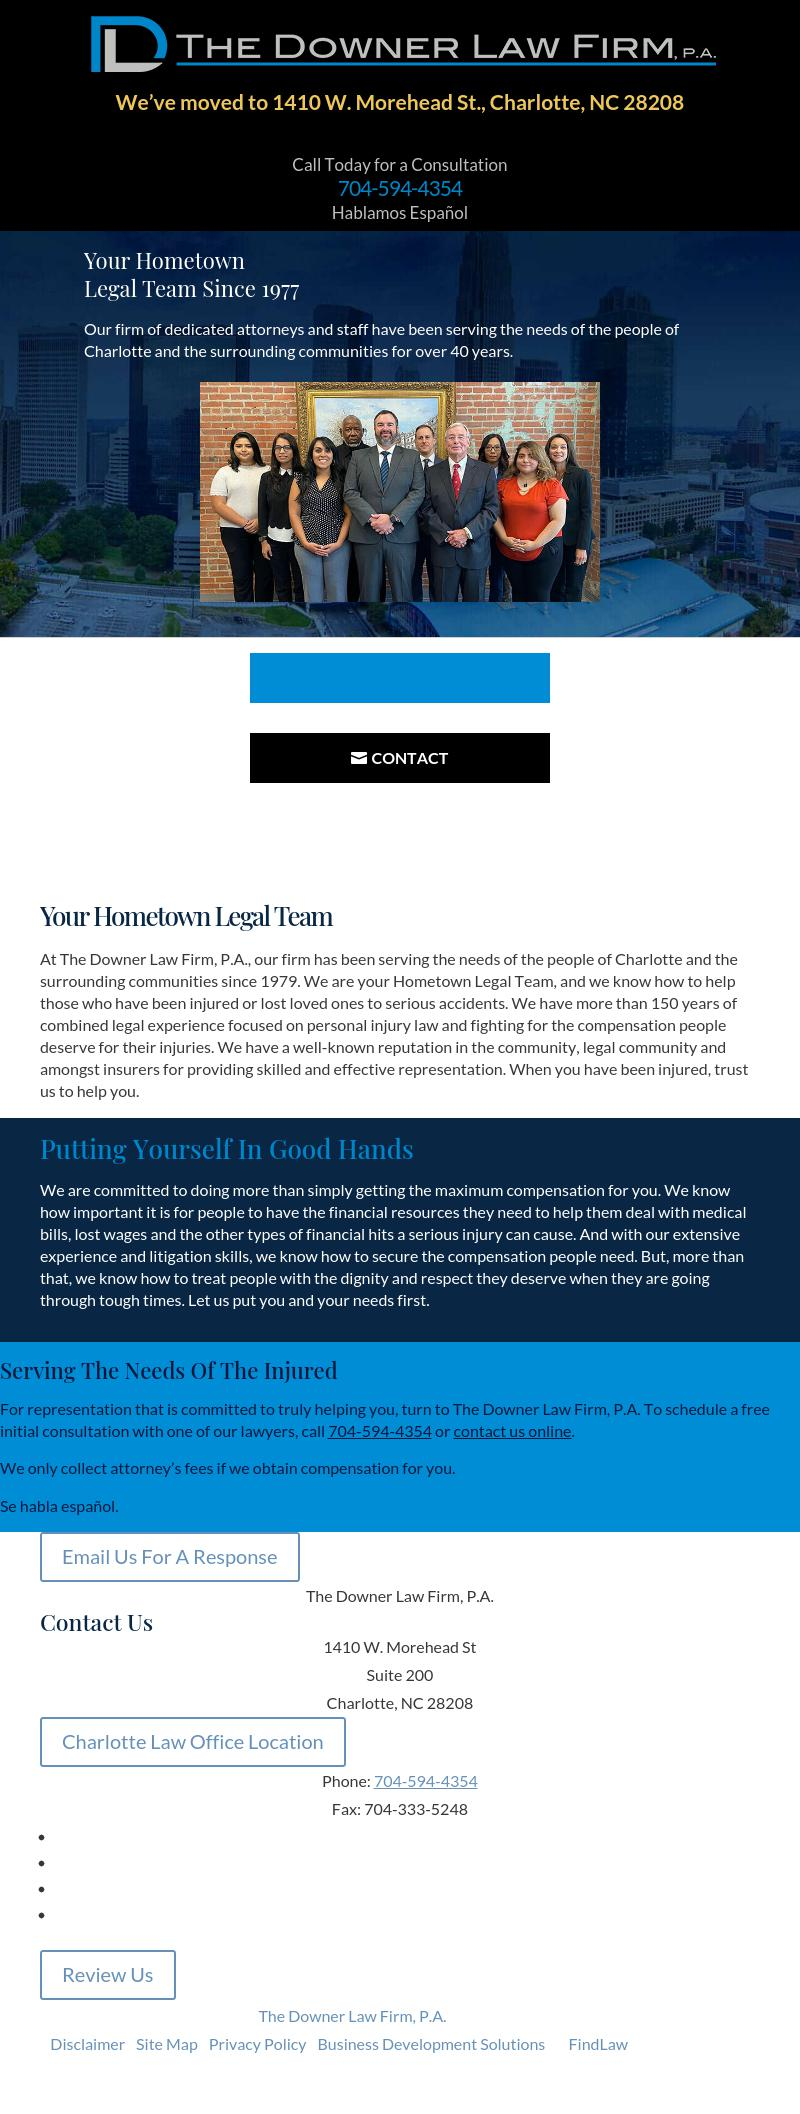 Downer, Walters & Mitchener, P.A. - Charlotte NC Lawyers